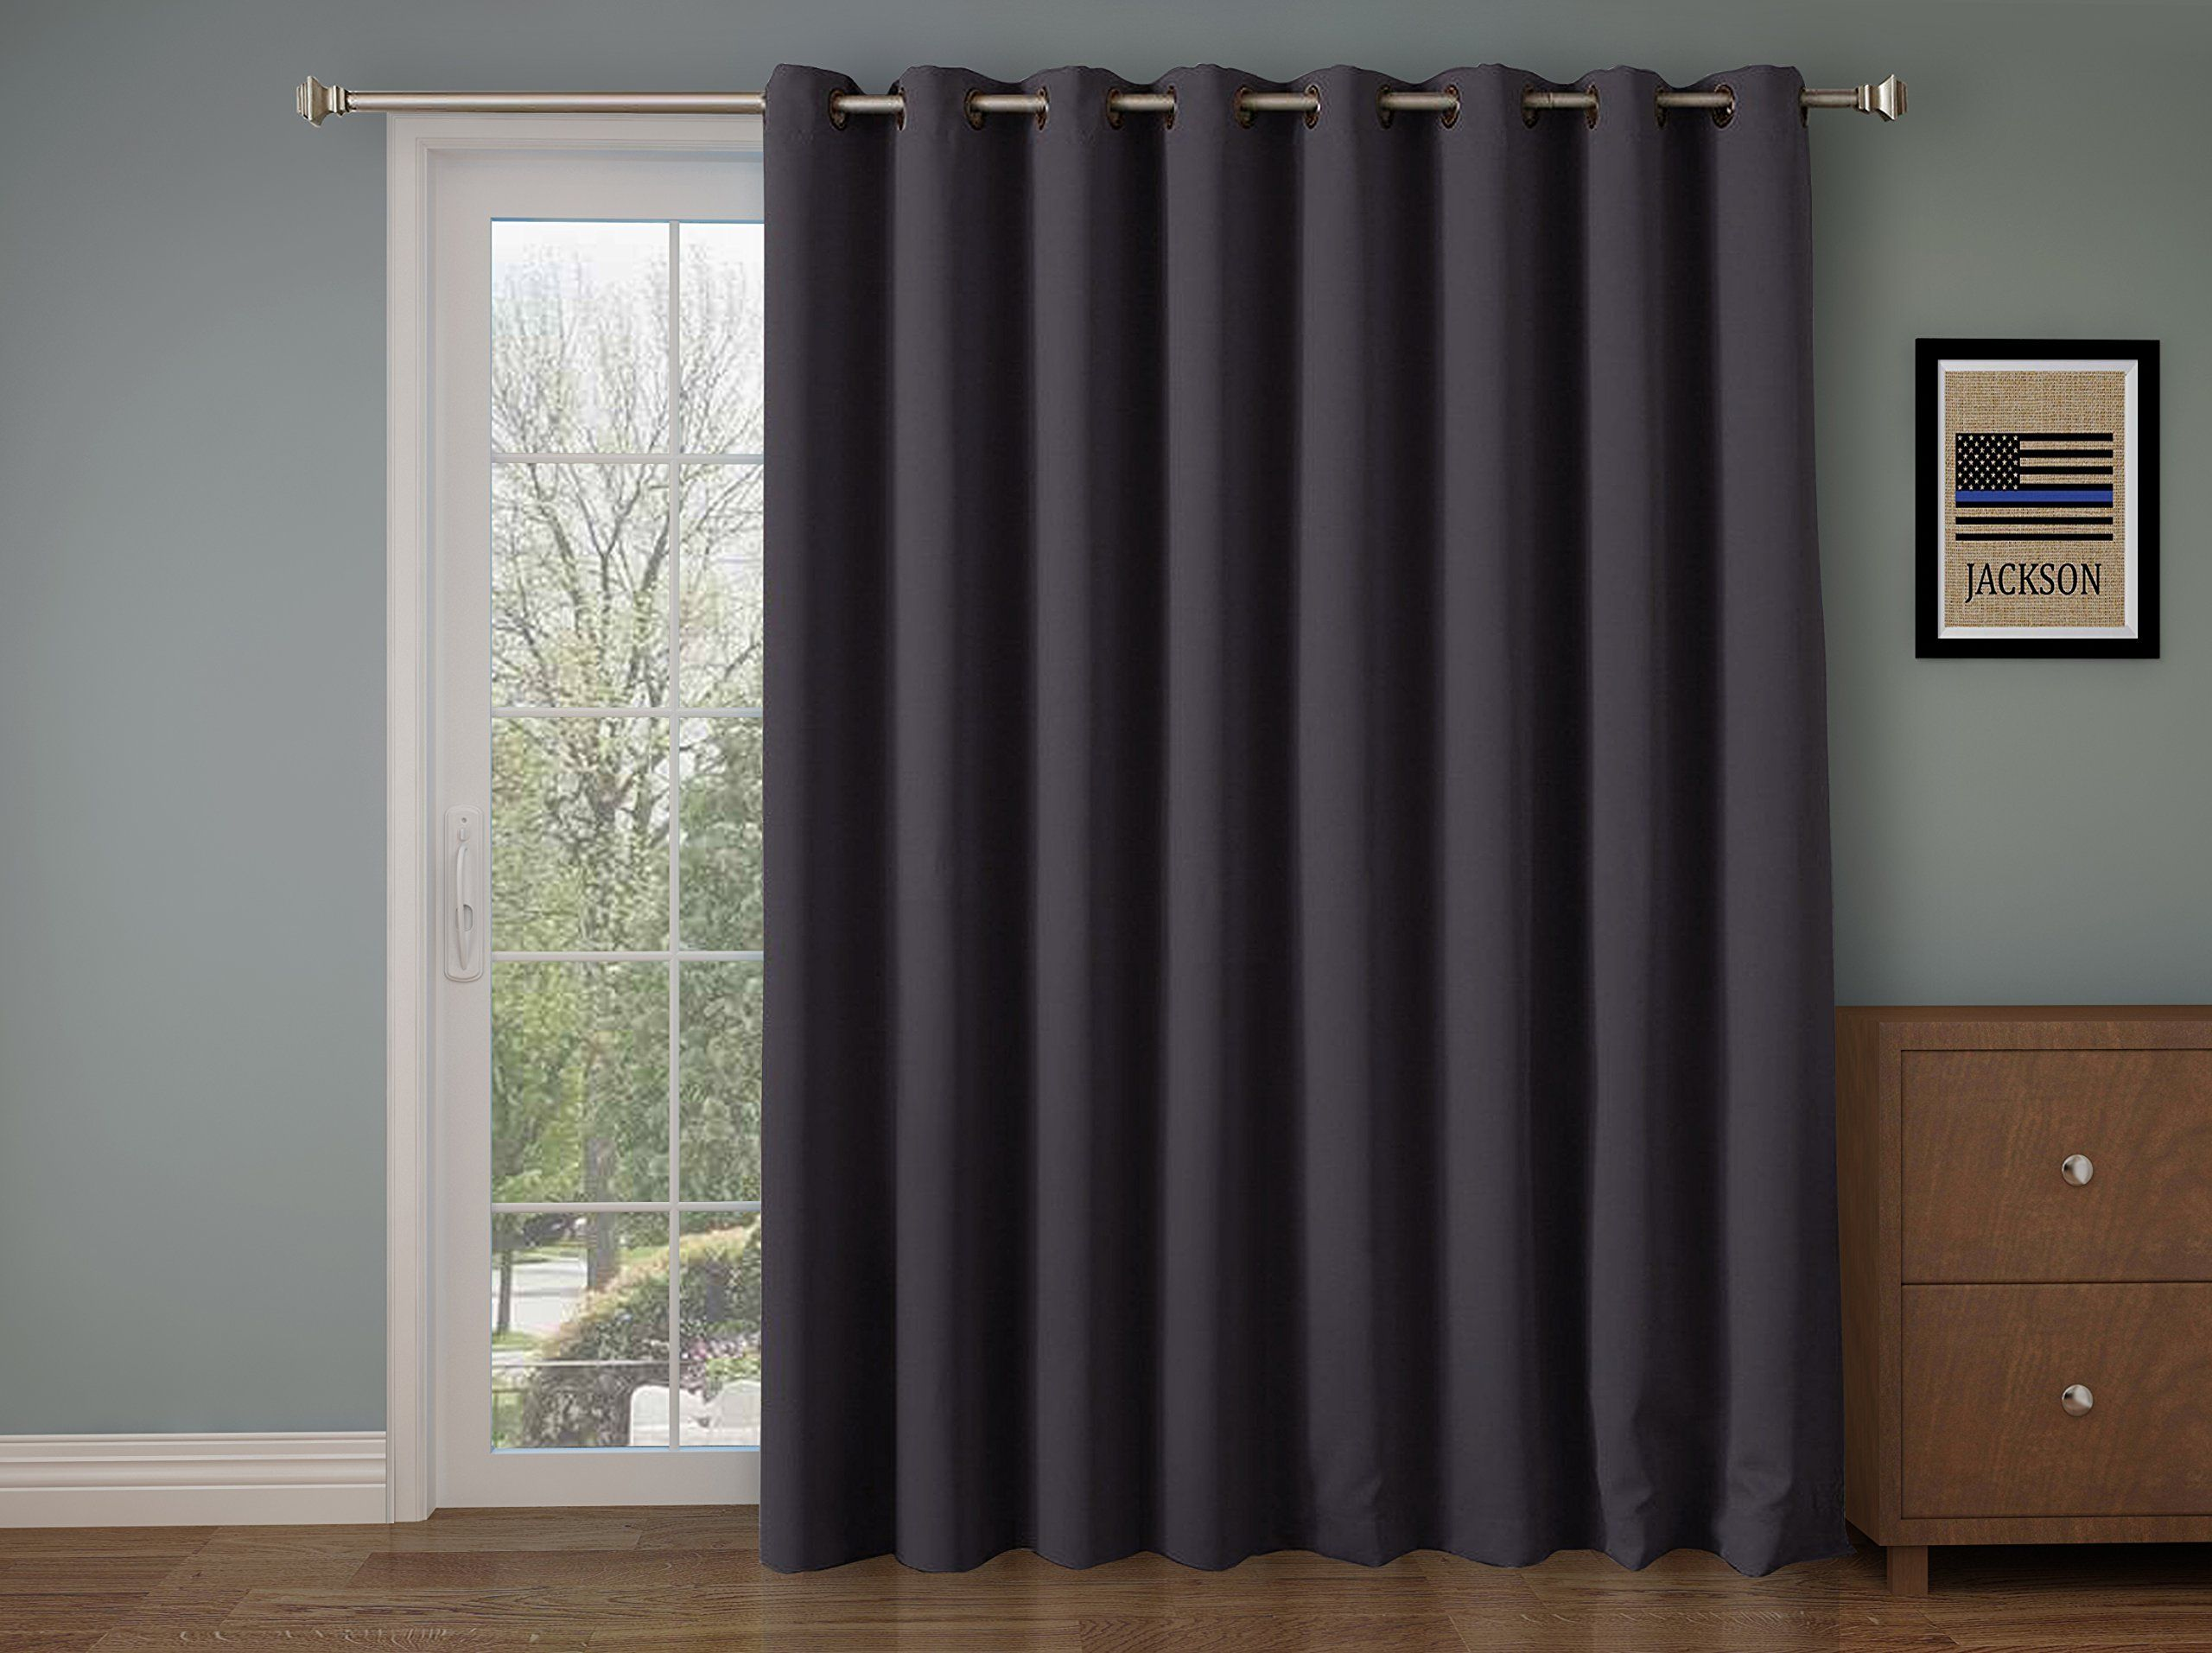 black improvement for photos curtains door of barn panel curtain new sliding fresh pics panels home